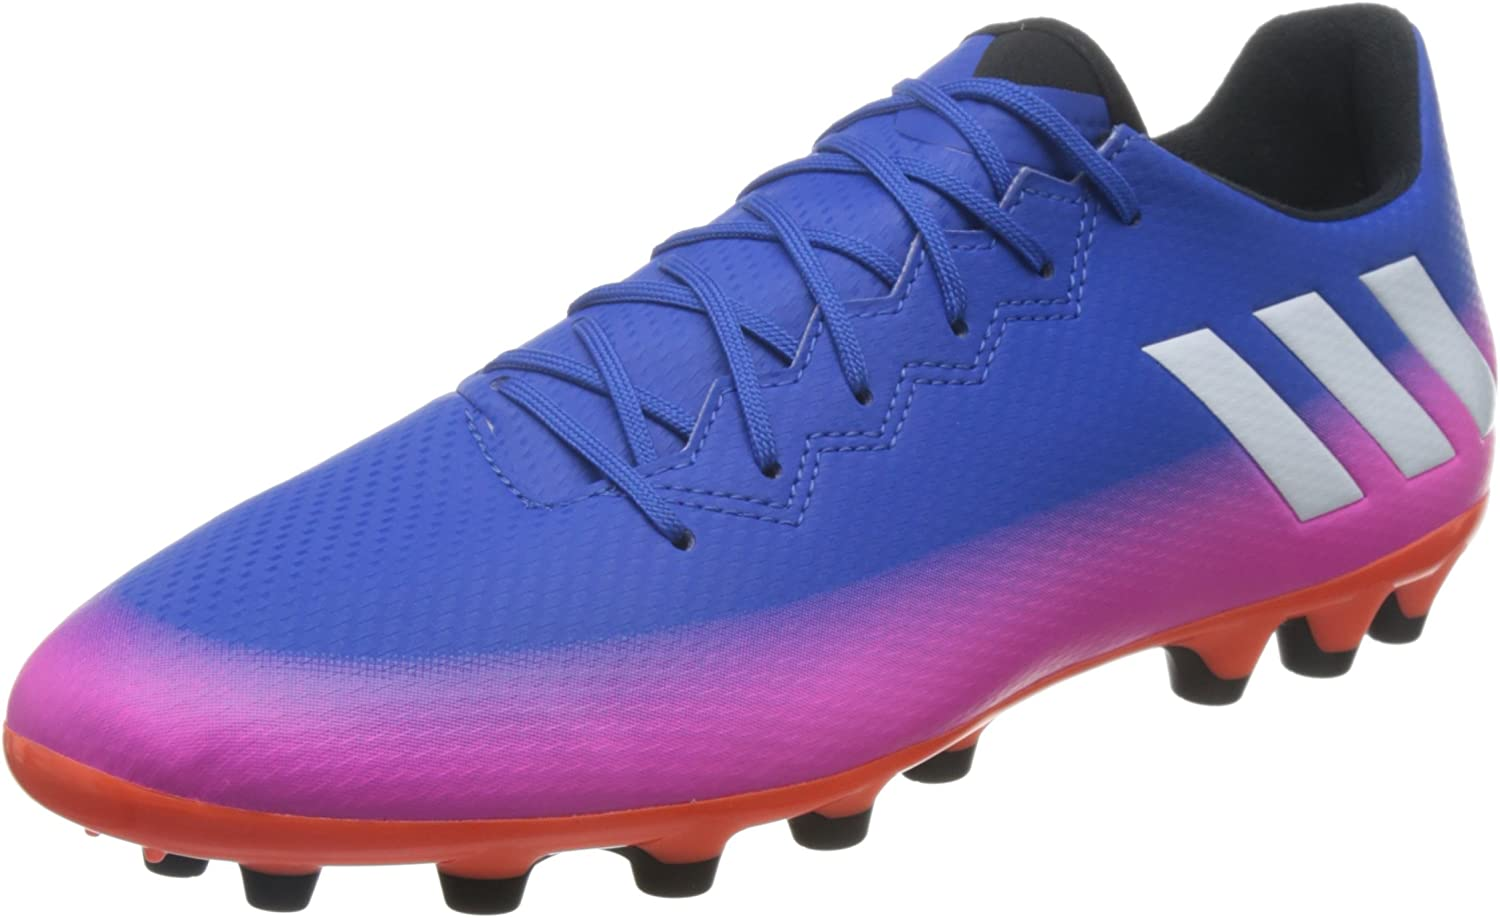 Adidas Messi 16.3 AG Mens Football Boots Soccer Cleats